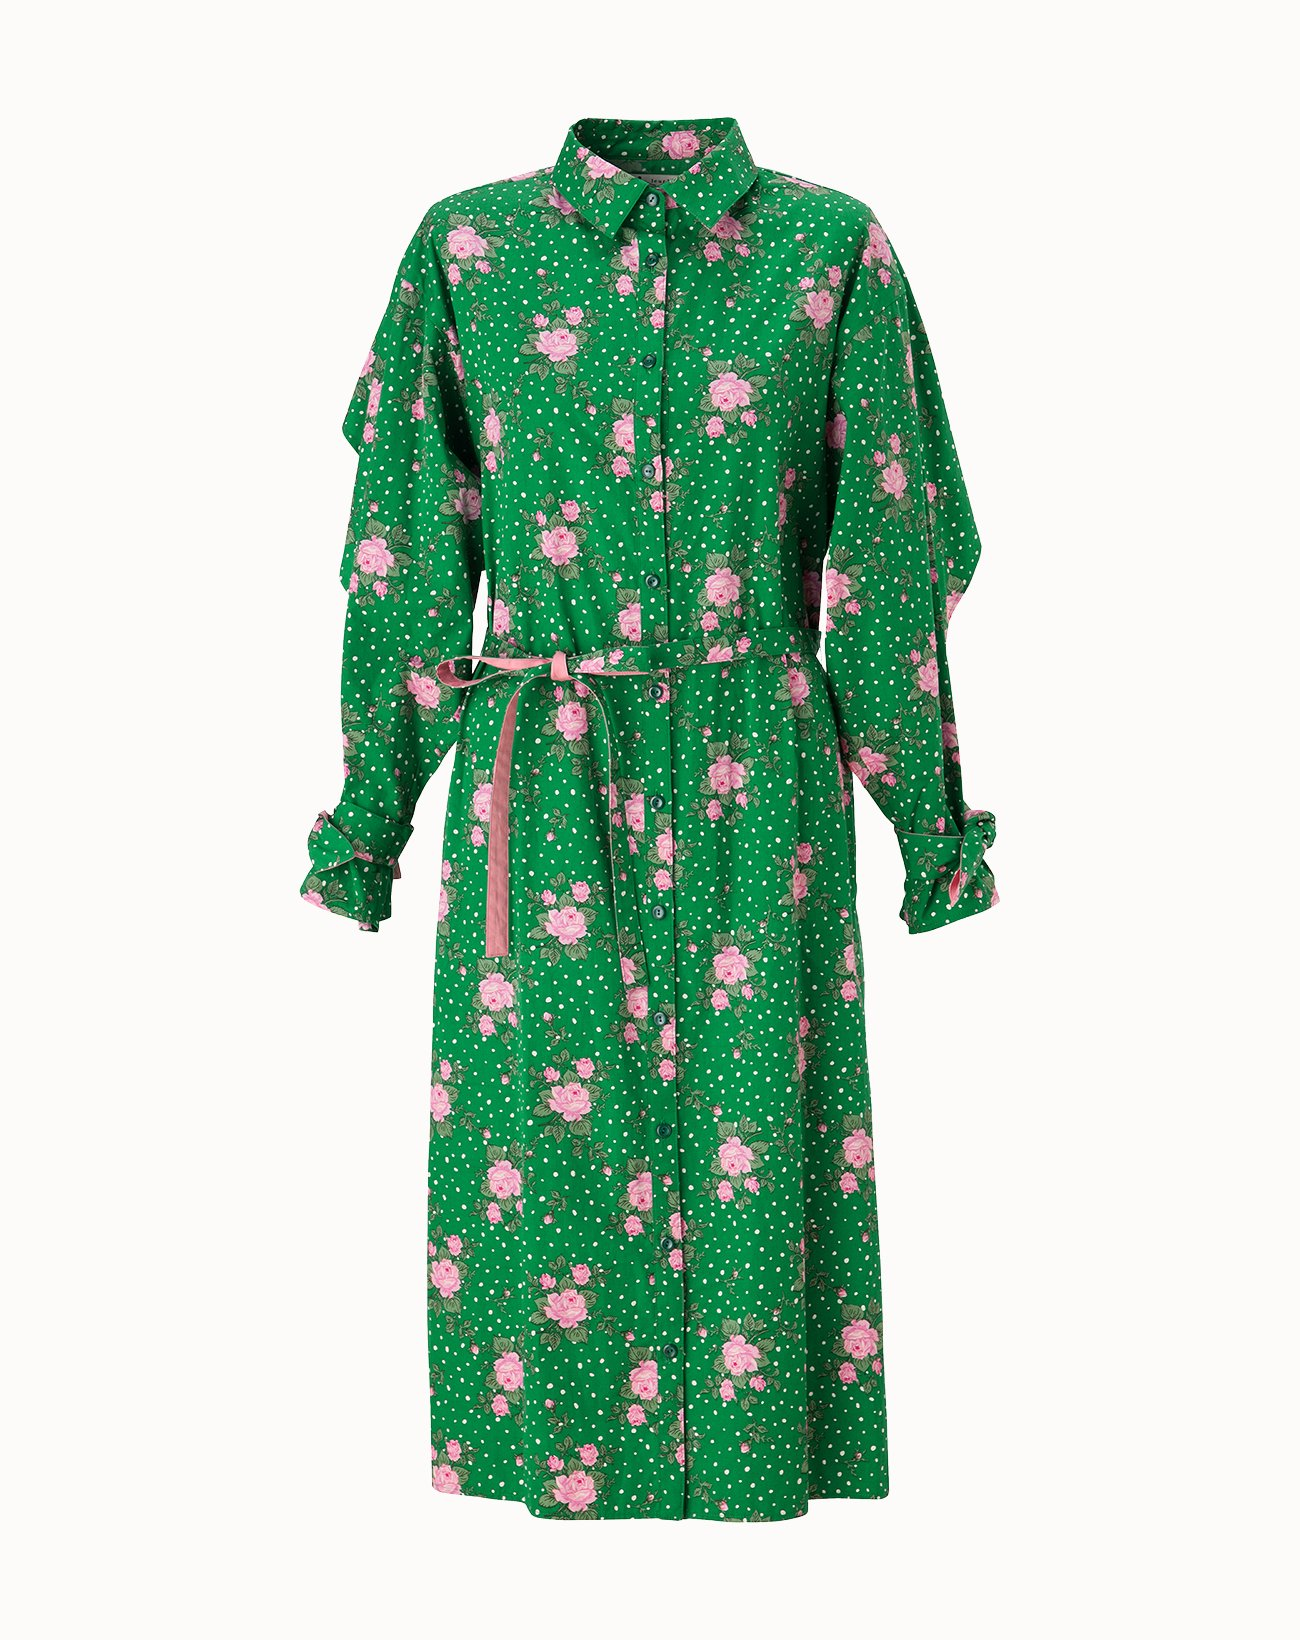 leur logette - Dot Rose Printed Cotton Dress - Green